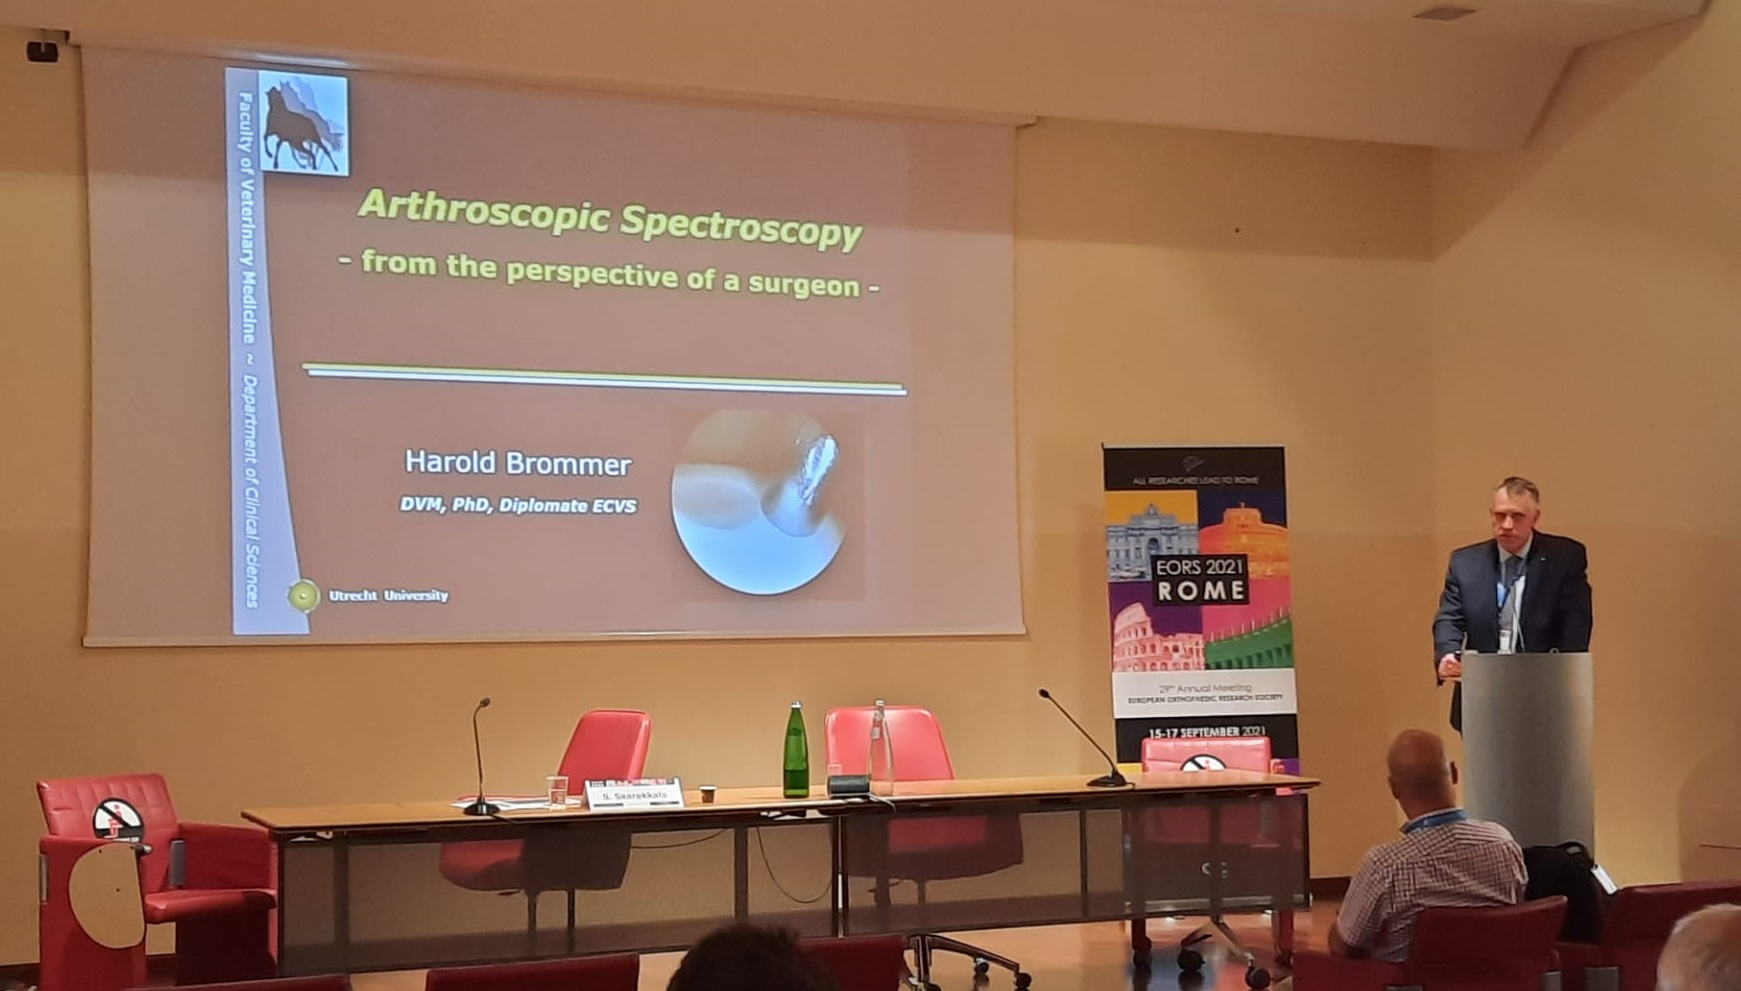 Arthroscopic Spectroscopy: from the perspective of a surgeon